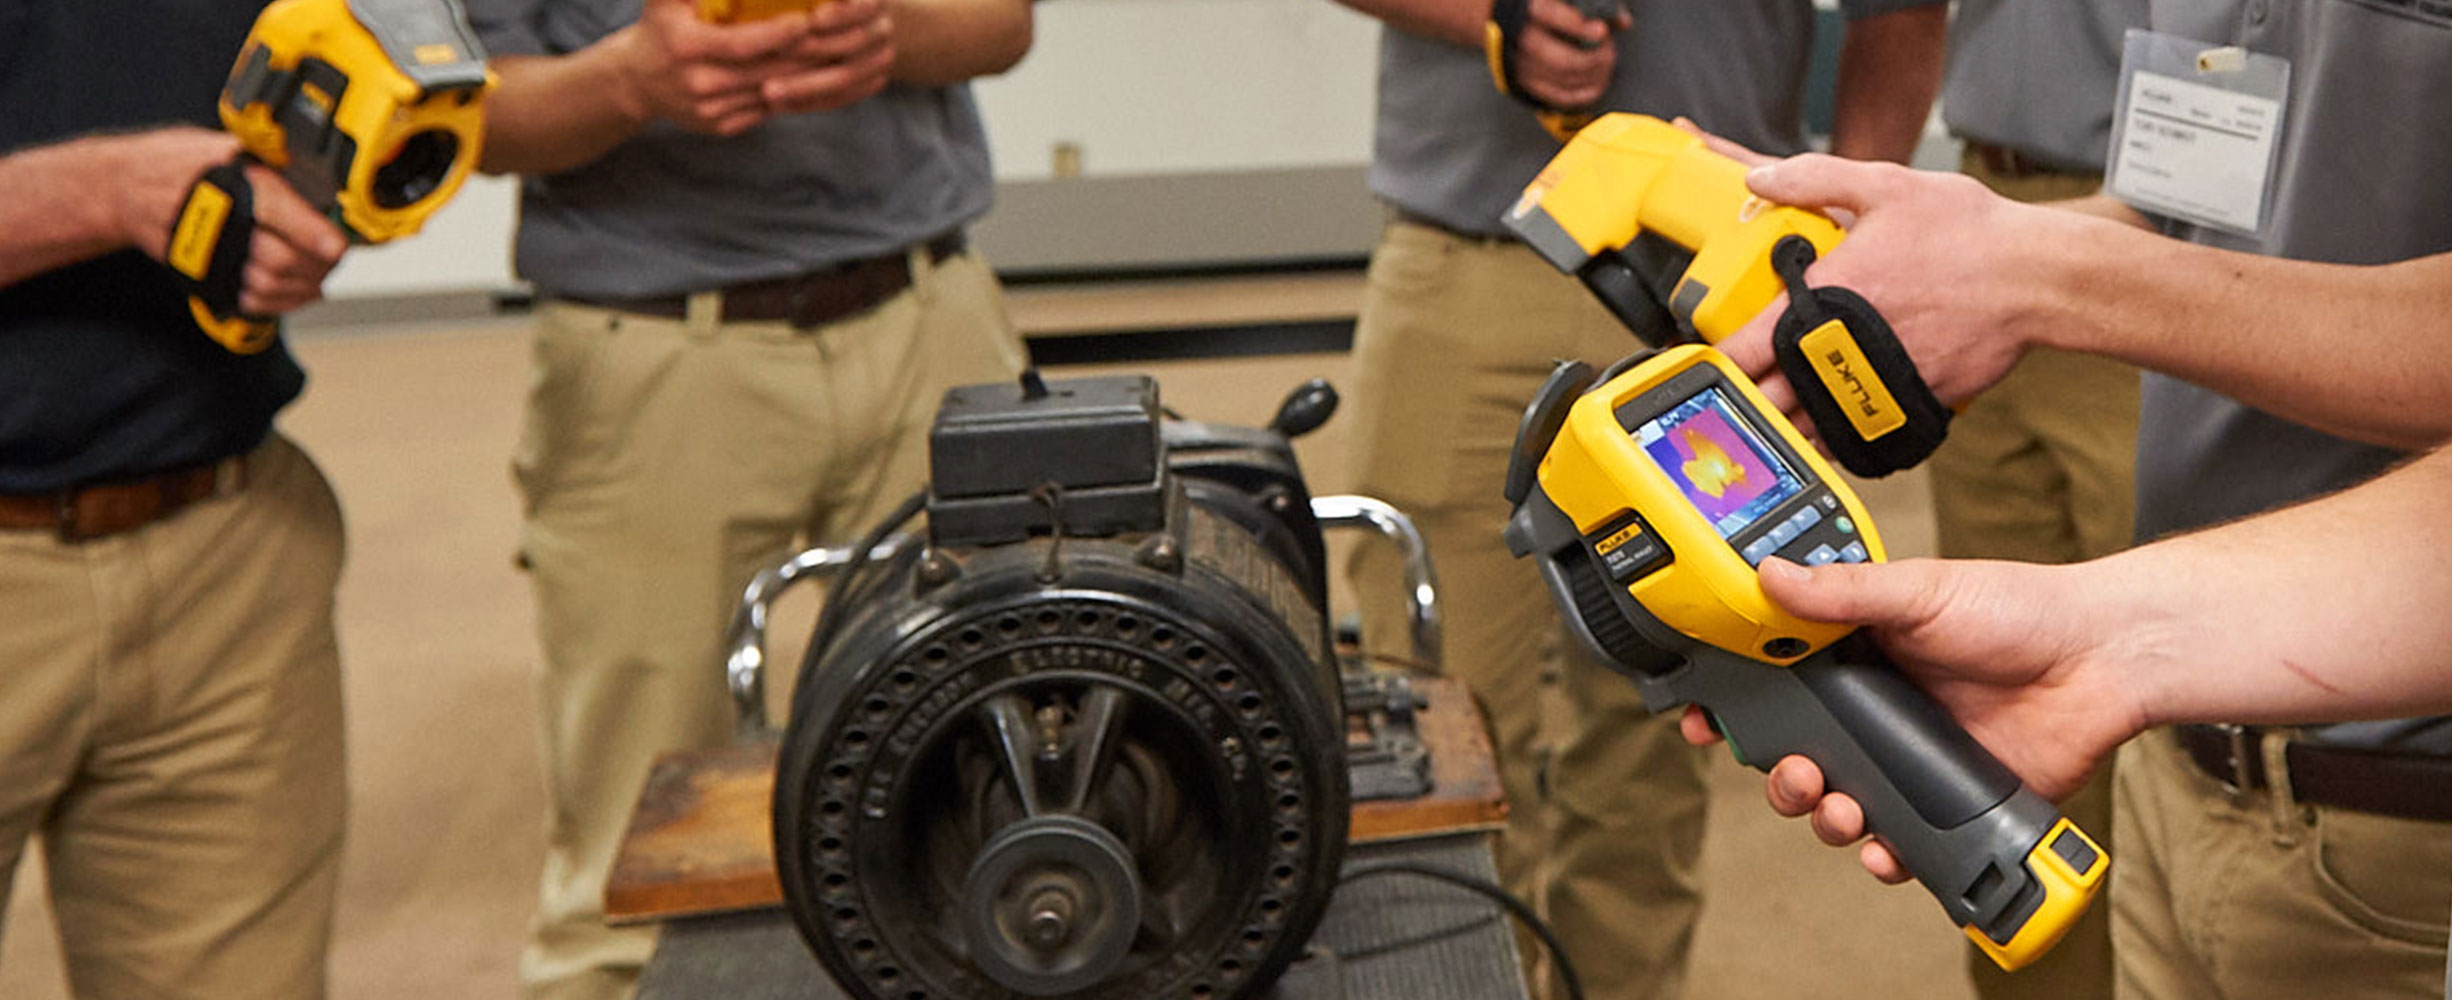 Students inspect a motor with Fluke infrared cameras during a training session